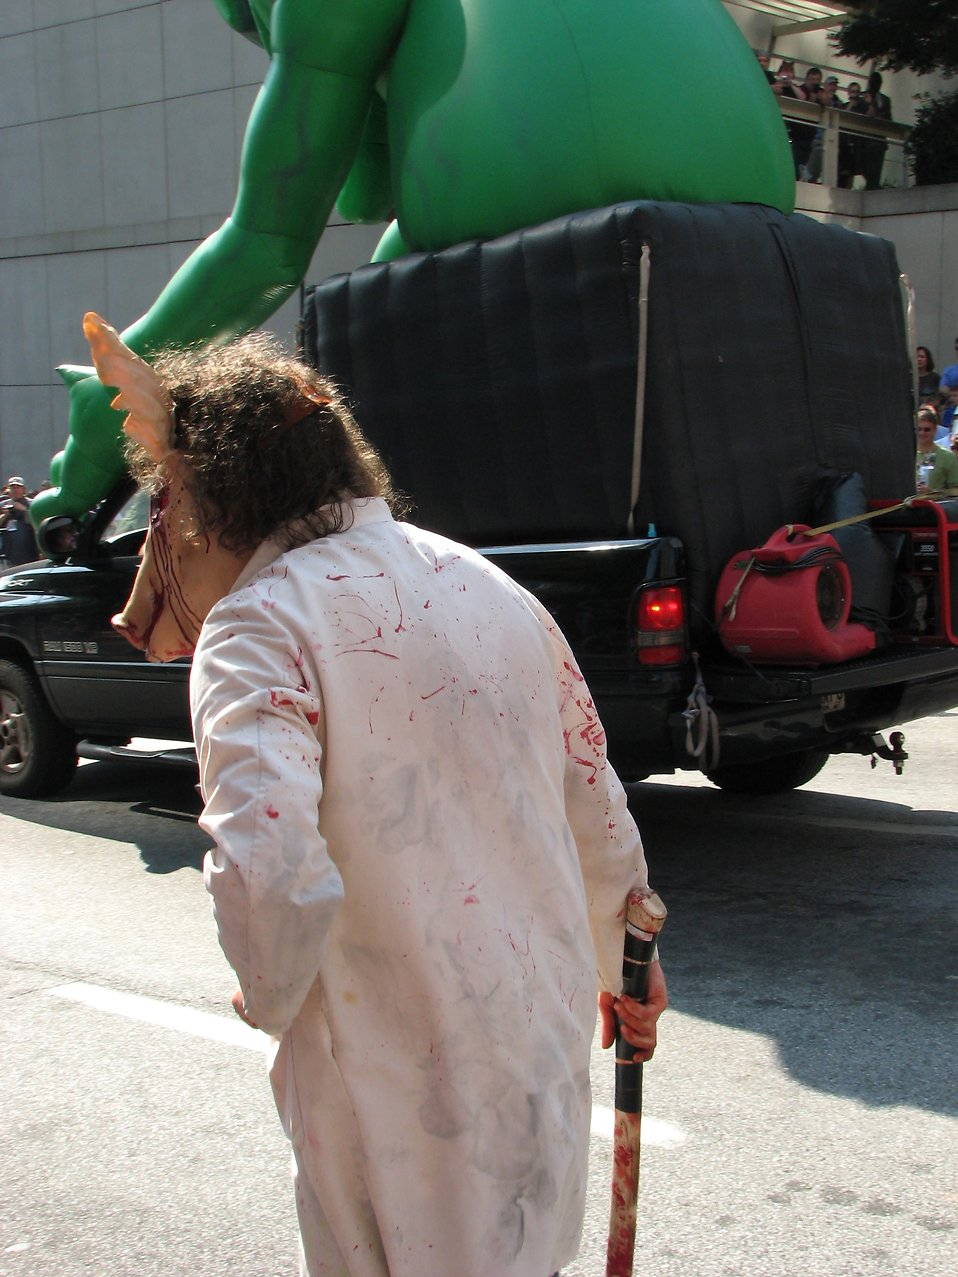 Man in bloody pig costume by float in 2008 Dragoncon parade : Free Stock Photo